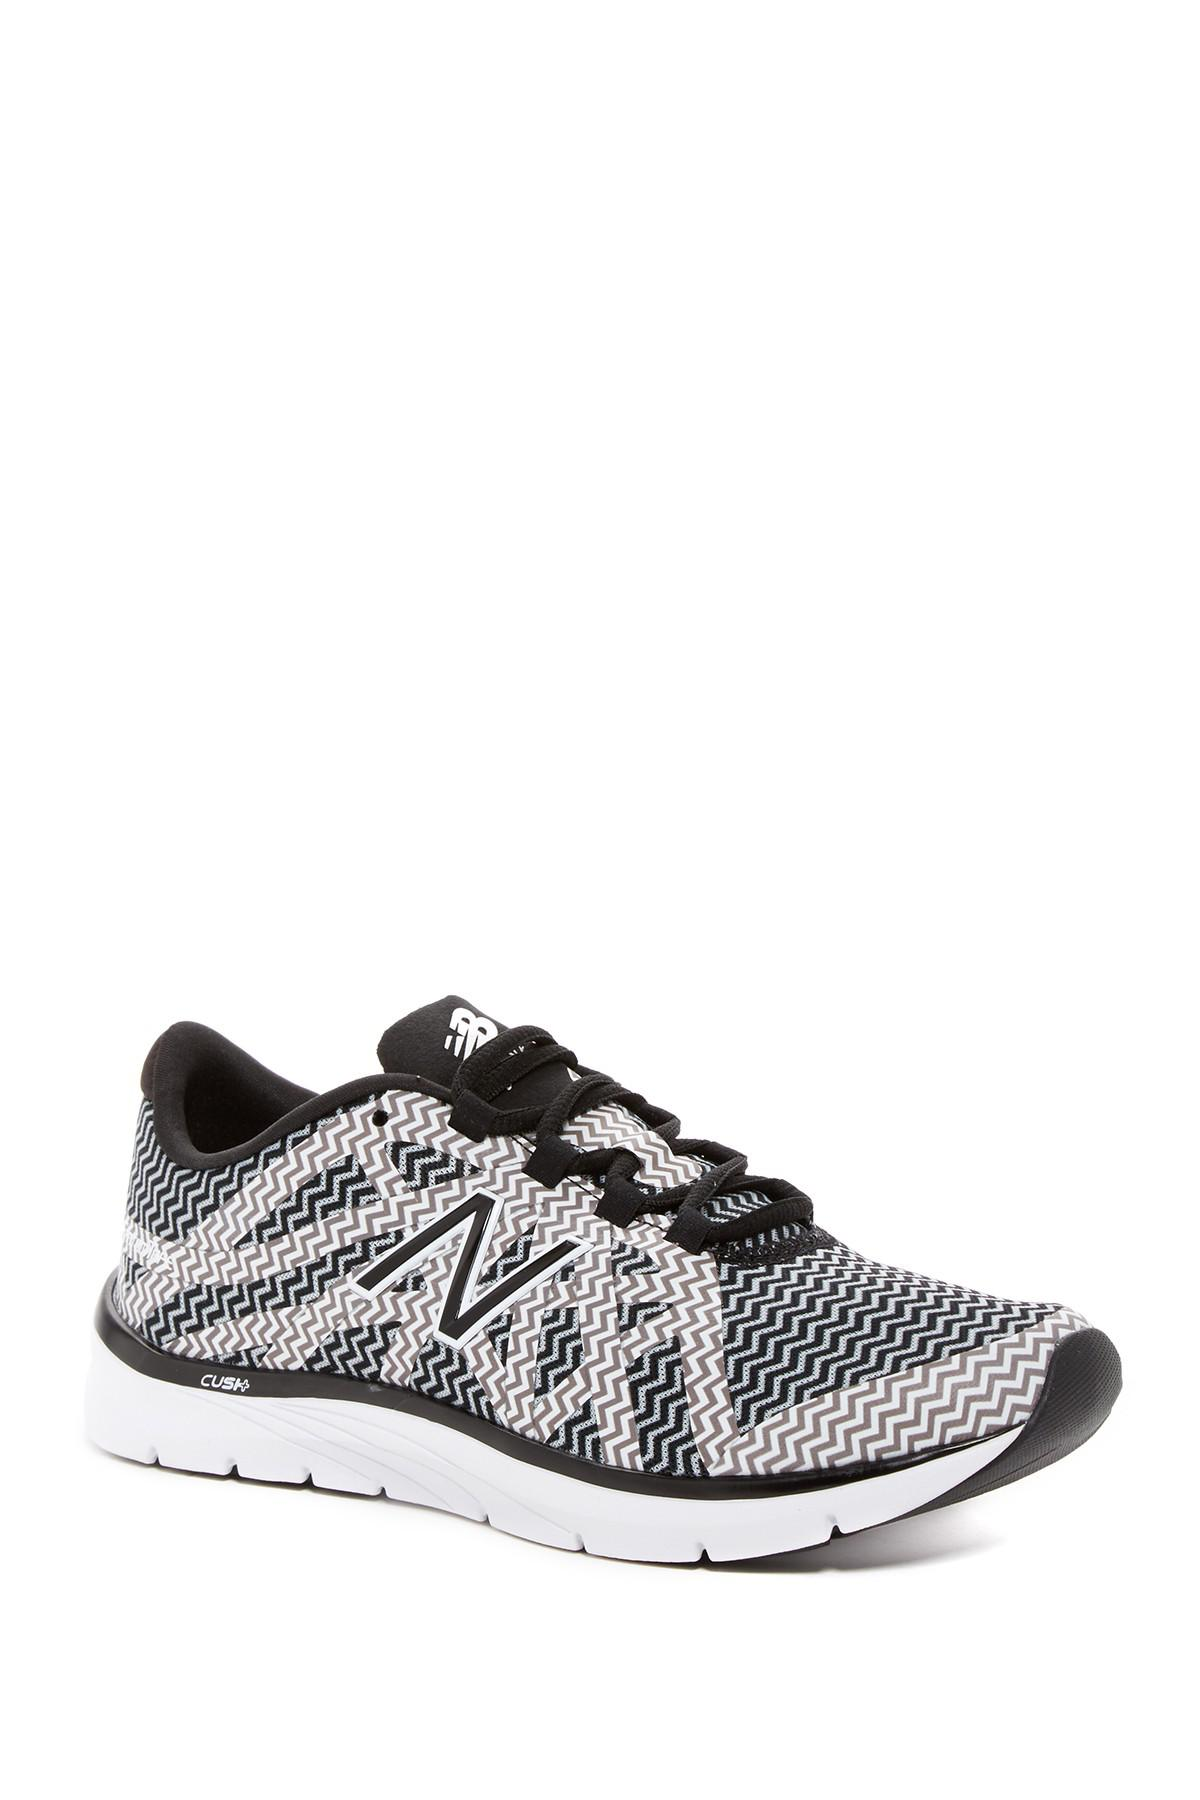 New Balance Fresh Foam 822v3 Graphic Training Sneaker - Wide Width Available HGpGKyBi